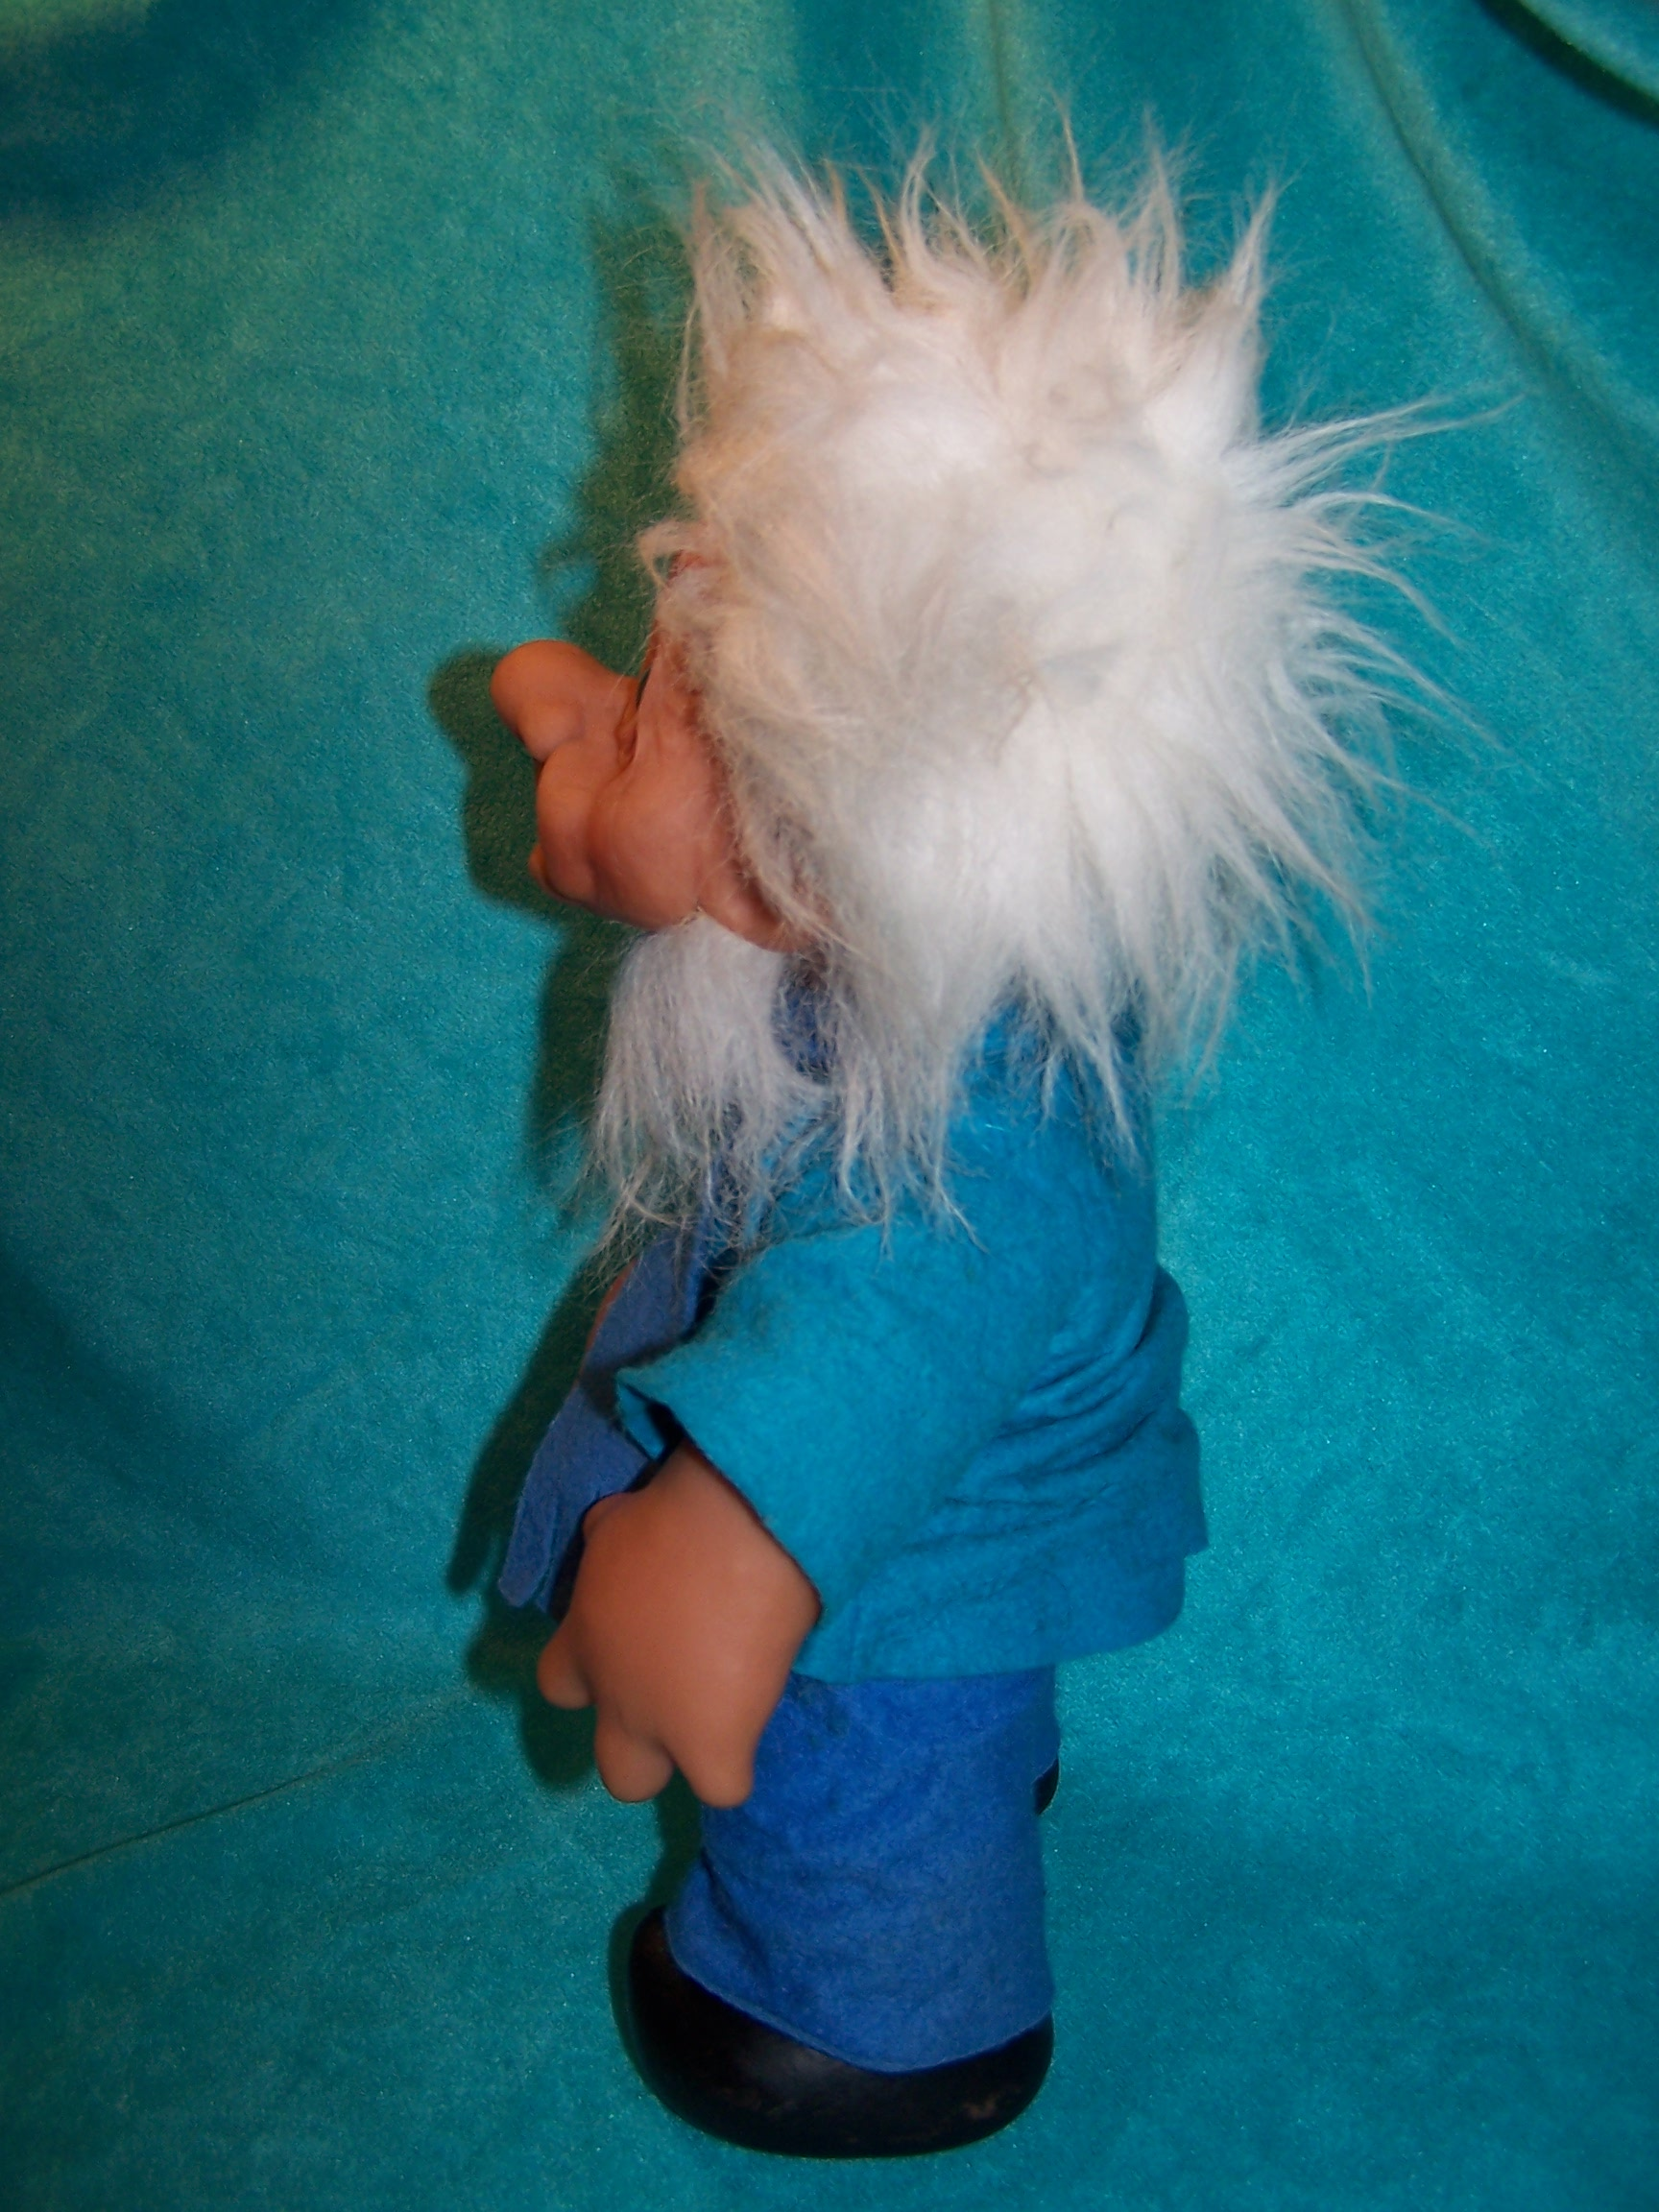 Image 2 of Norfin Troll Doll Grandpa, Thomas Dam, 1977 Denmark